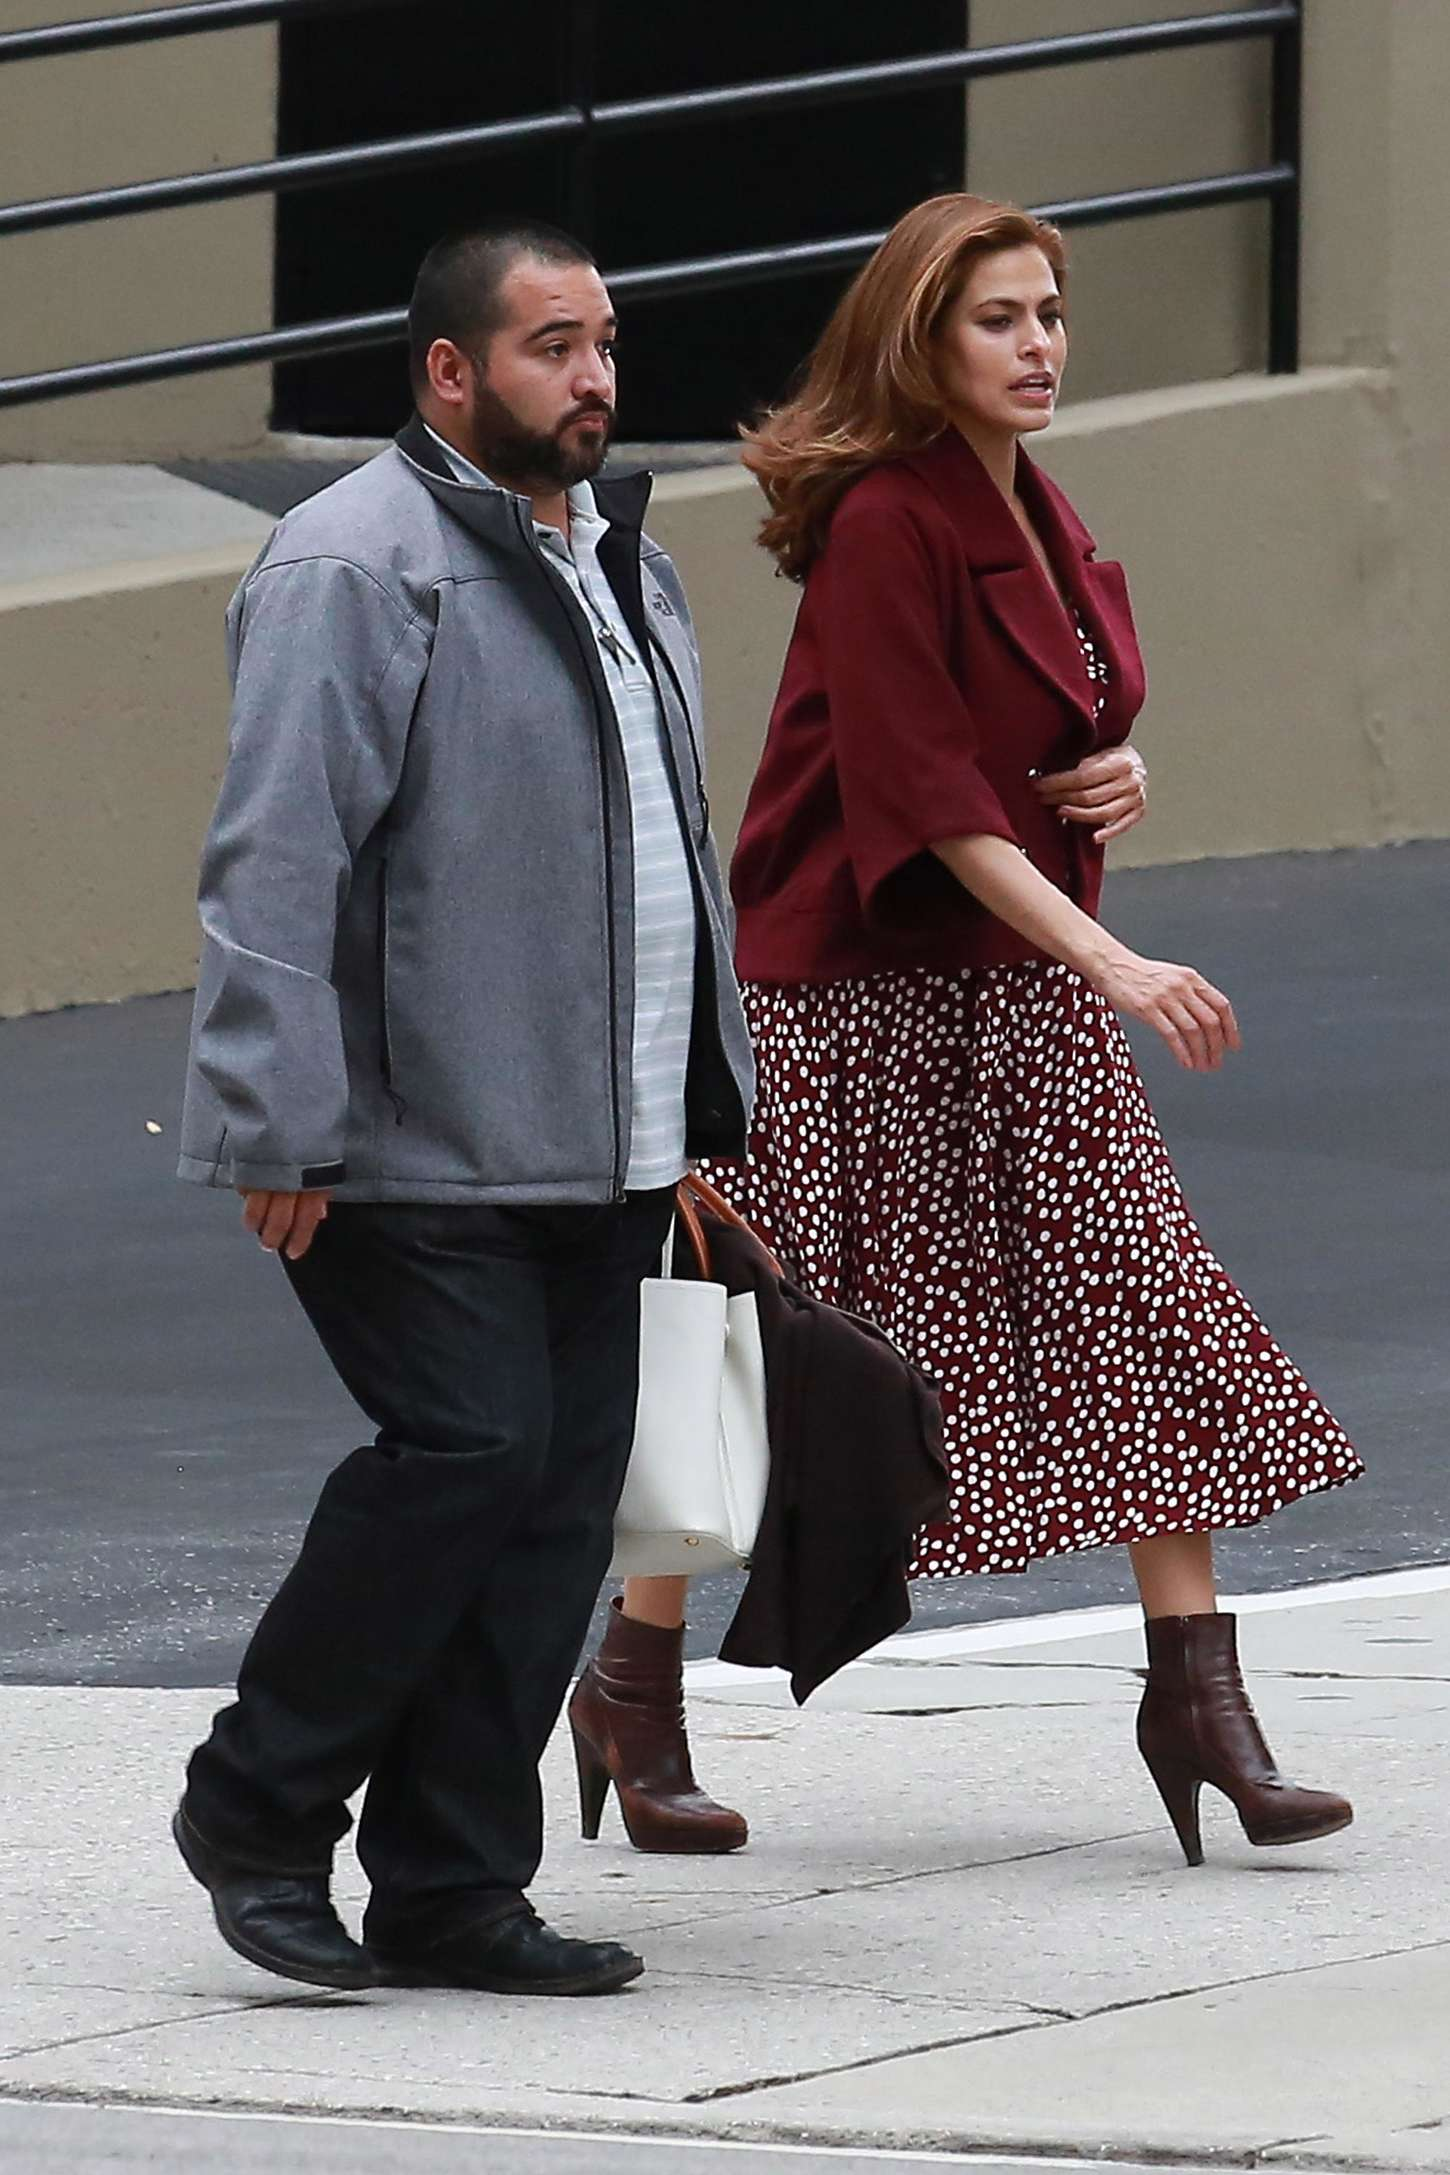 Eva Mendes on the Set While Shooting a Commercial in Los Angeles